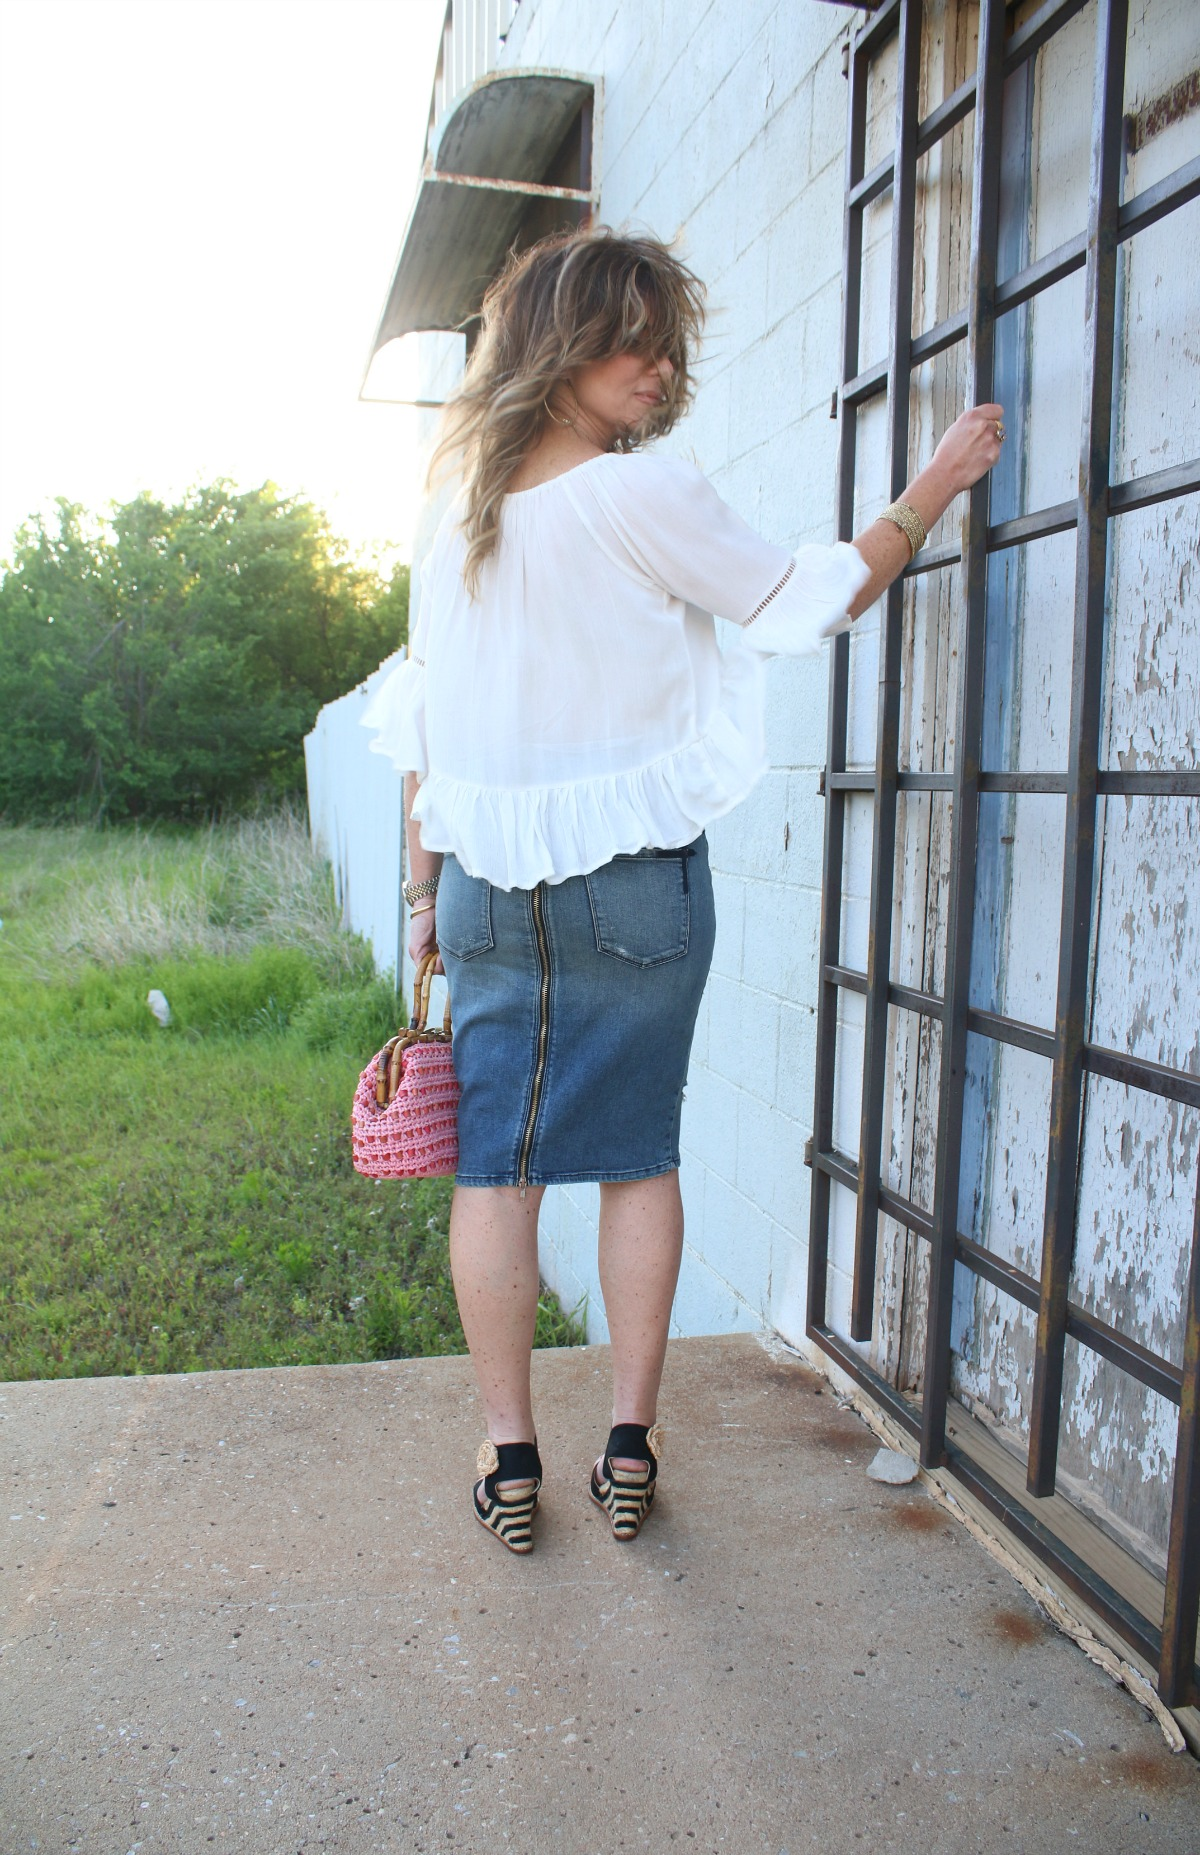 What To Wear Spring Style Mixing Textures TheOPLife.com 3